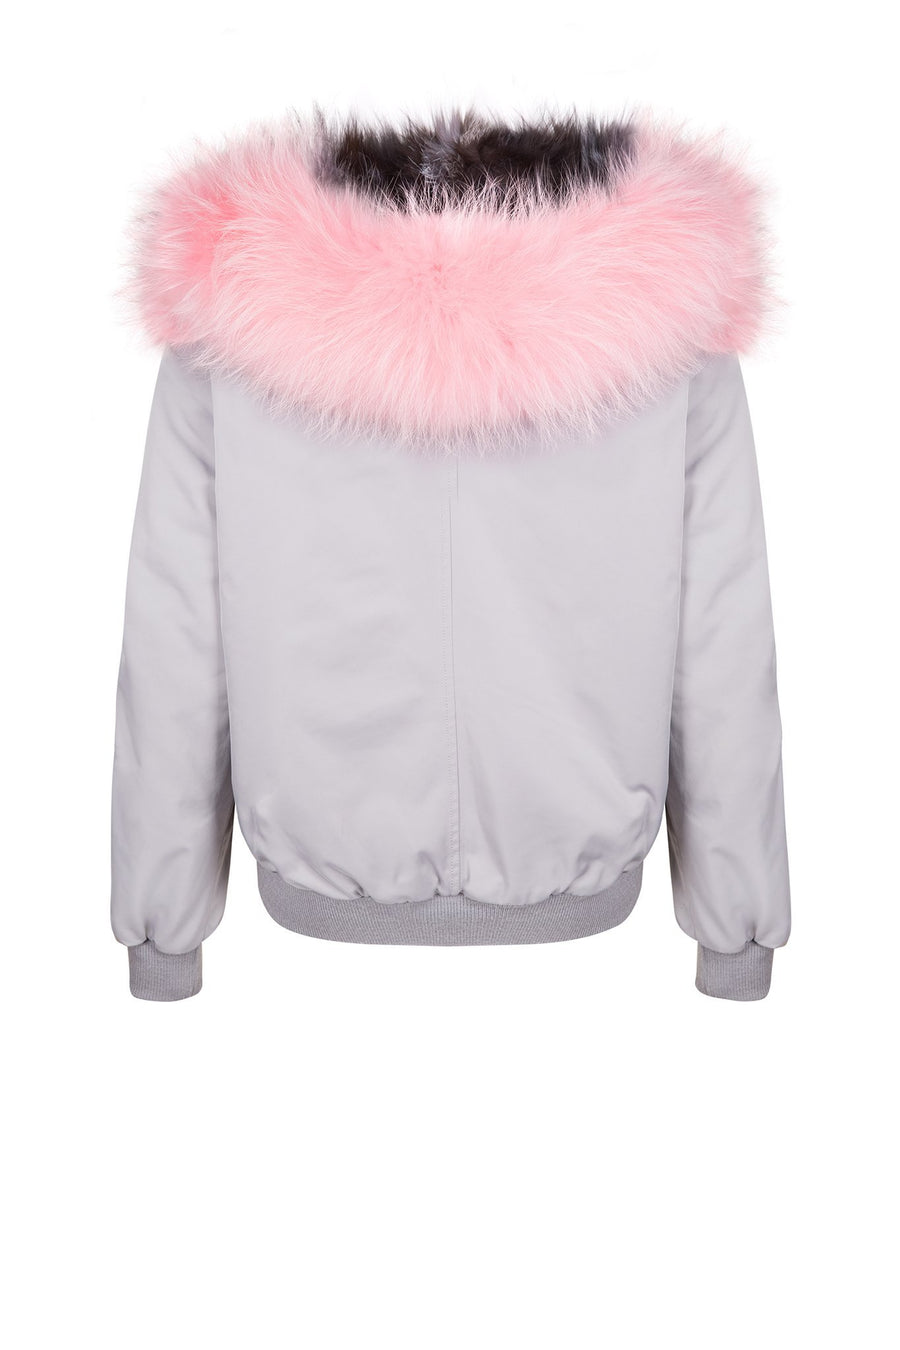 Grey and Pink Bomber